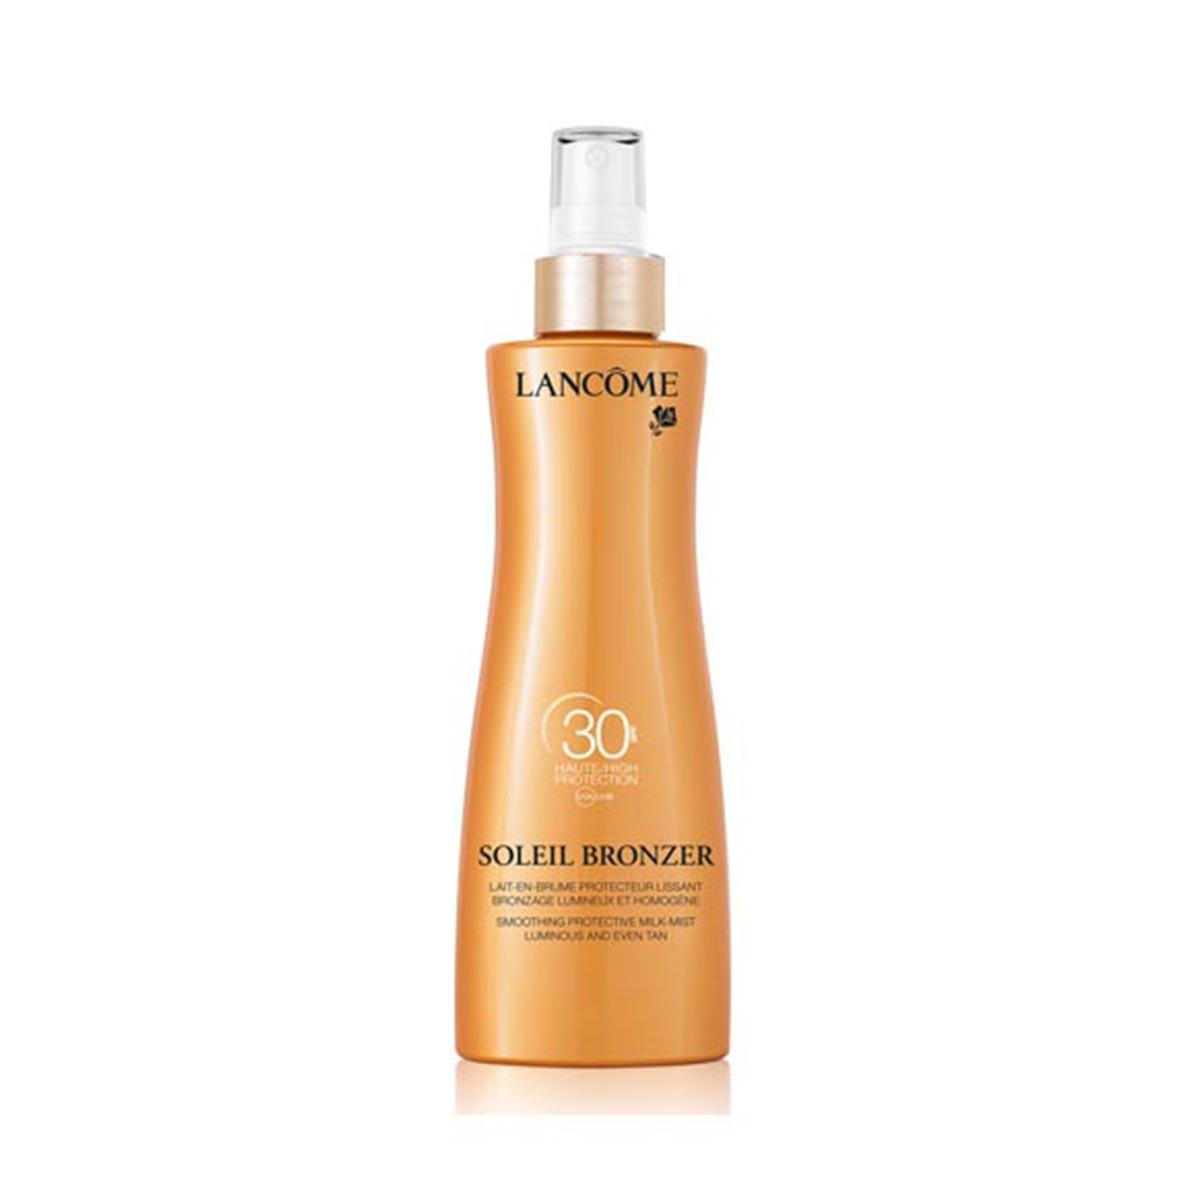 Lancome-fragrances Soleil Bronzer Spf30 Smoothing Protective Milk Mist Musk Rose Oils 200ml